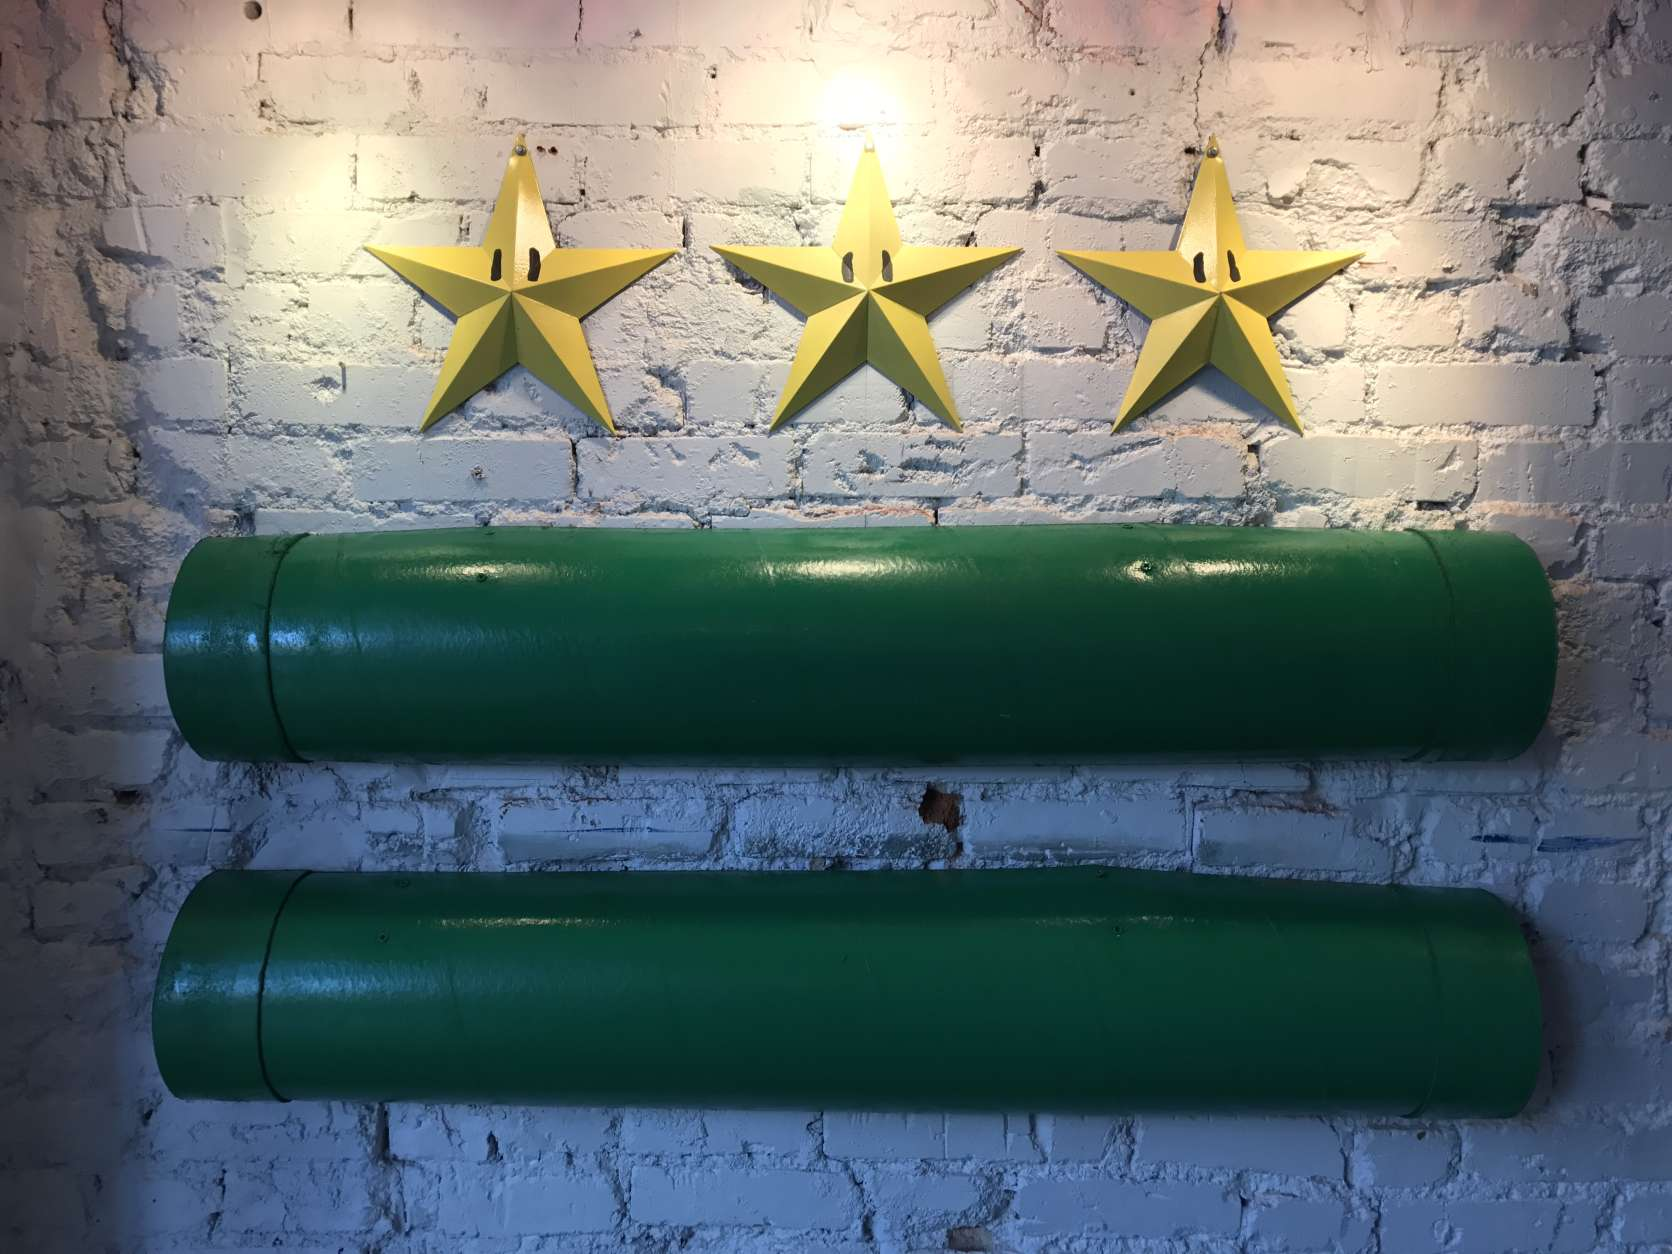 Inside the Mario Brothers bar, designers used the pipes and stars of the video game to create the image of the D.C. flag. (WTOP/Megan Cloherty)